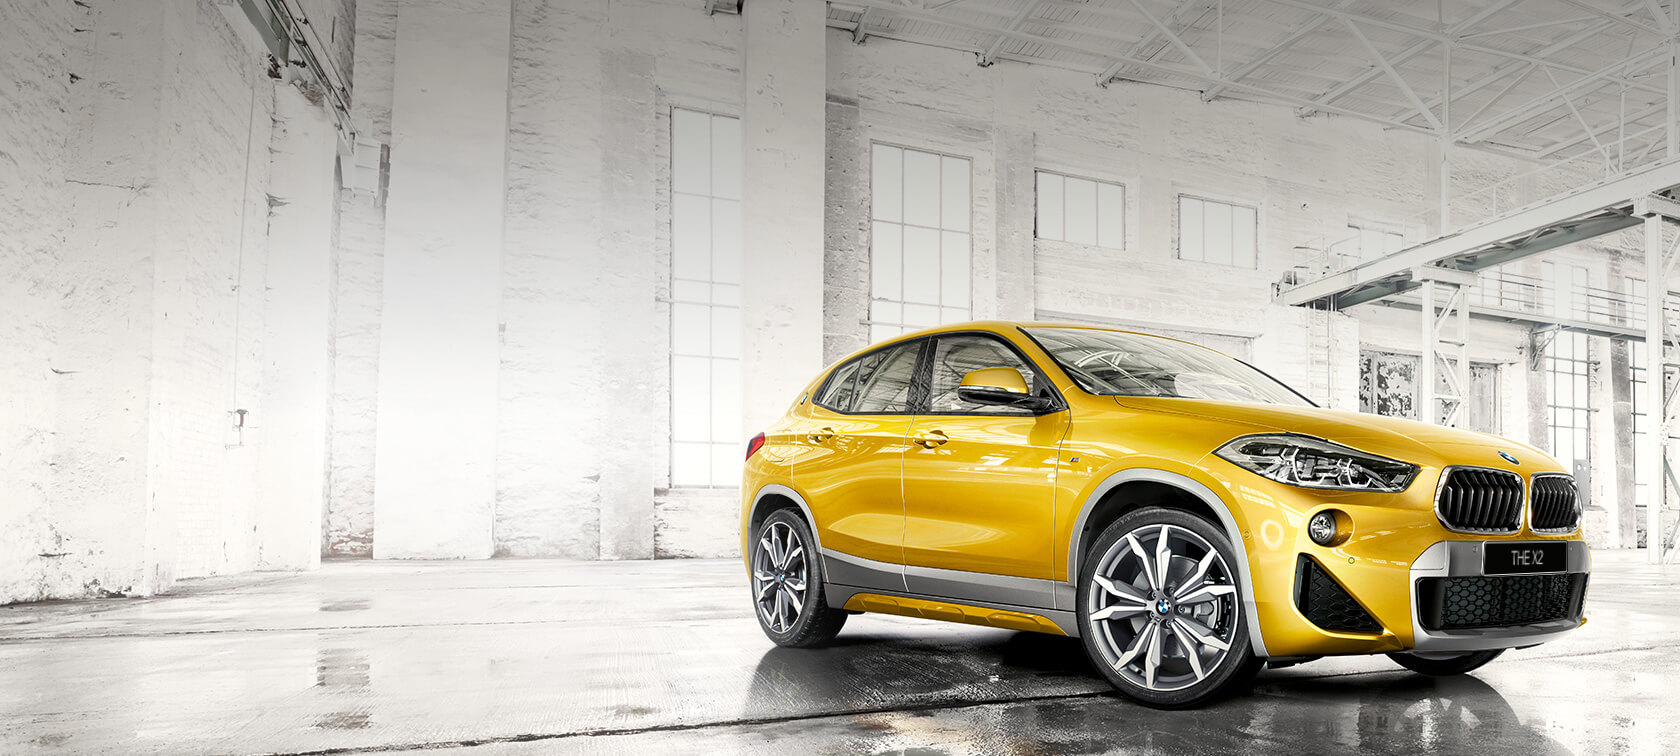 Условия покупки BMW X2 2018 F39 Galvanic Gold metallic